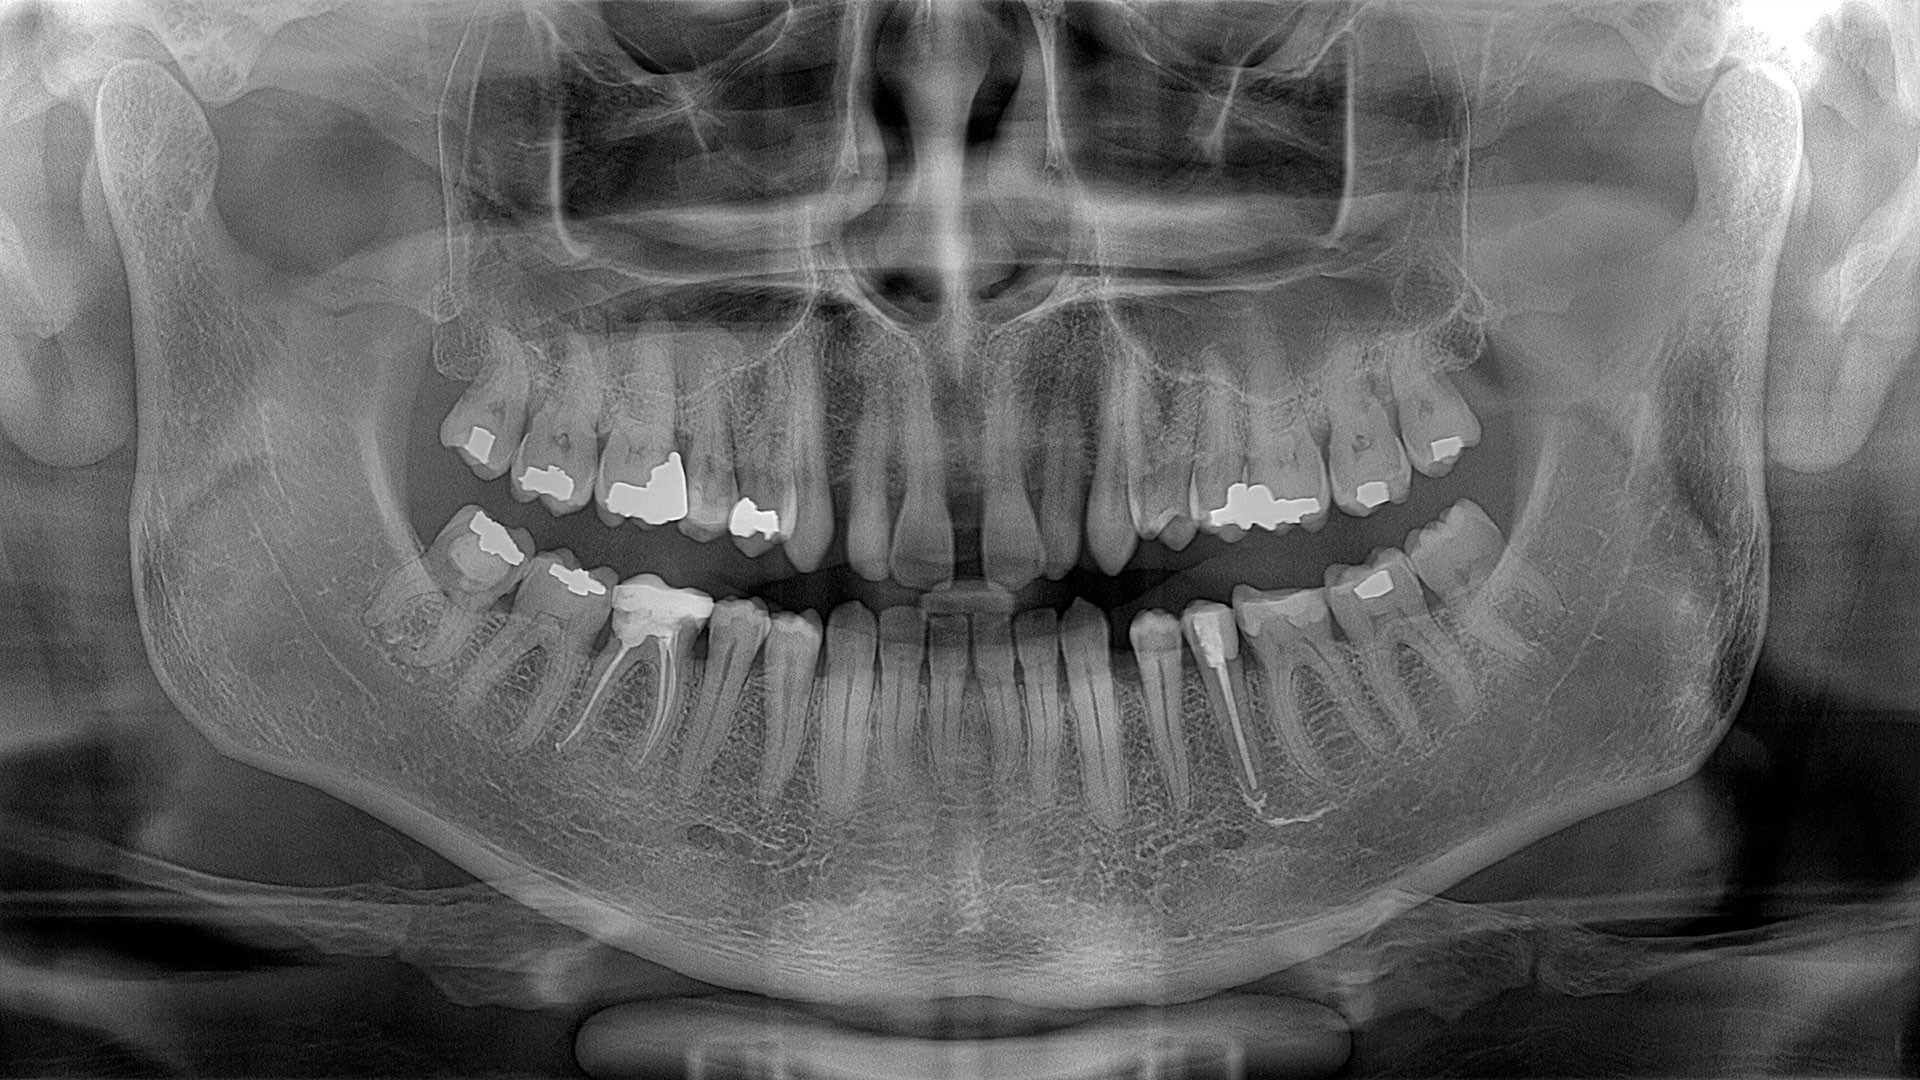 Dental Panoramic Image